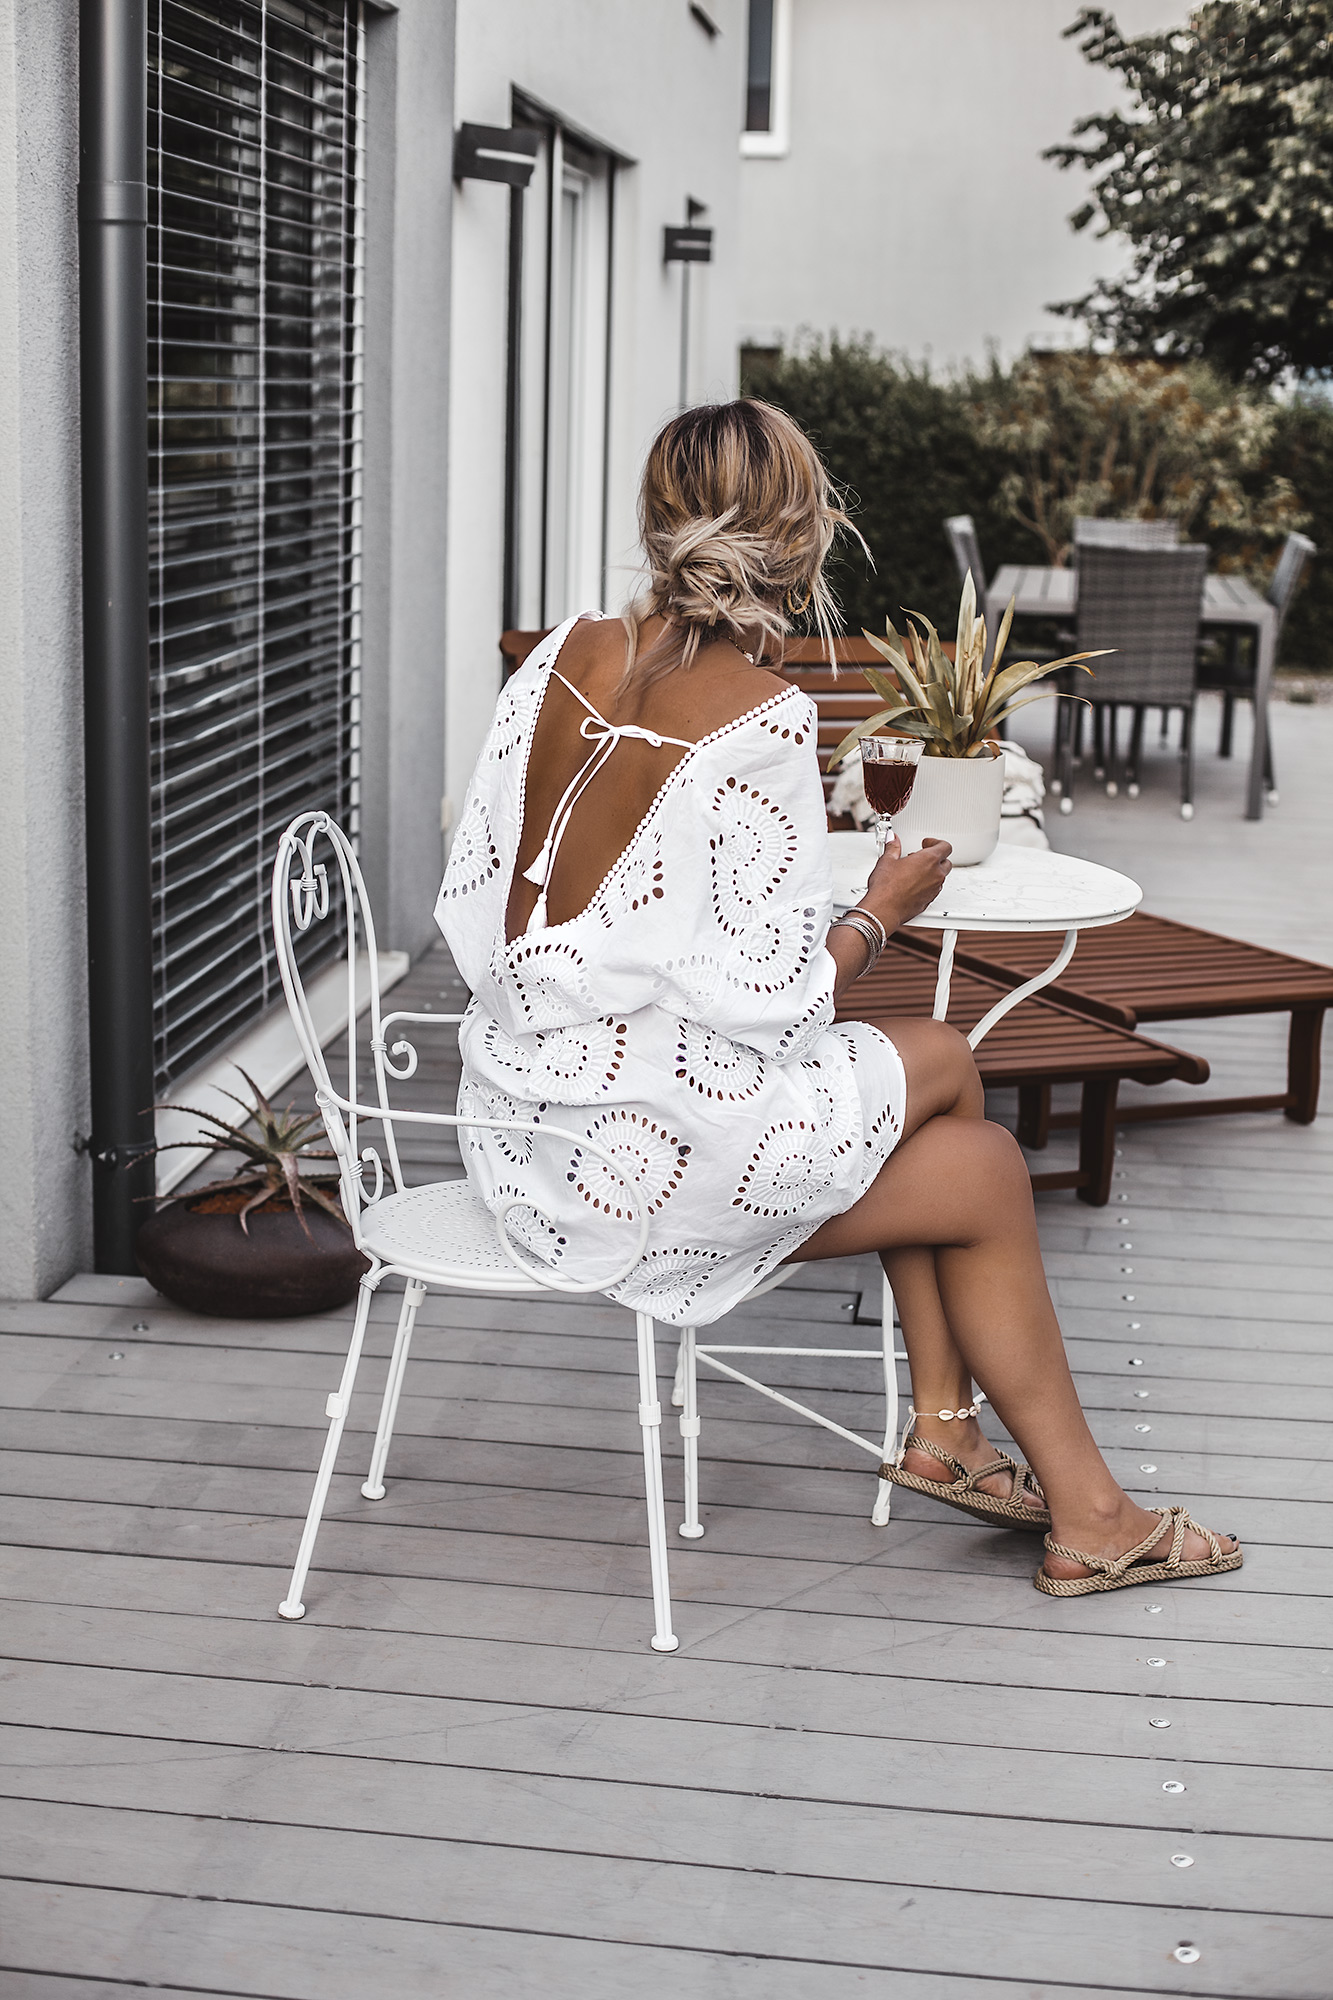 The best summer dress is always a white dress. If it is a boho beach style dress even better. If it is also a Broderie Anglaise dress with a beautiful open back, pom poms, and a perfect decollete, then it is the ultimate dress for this summer. And it's only under 40 €. Plus, Boho rope flat sandals.